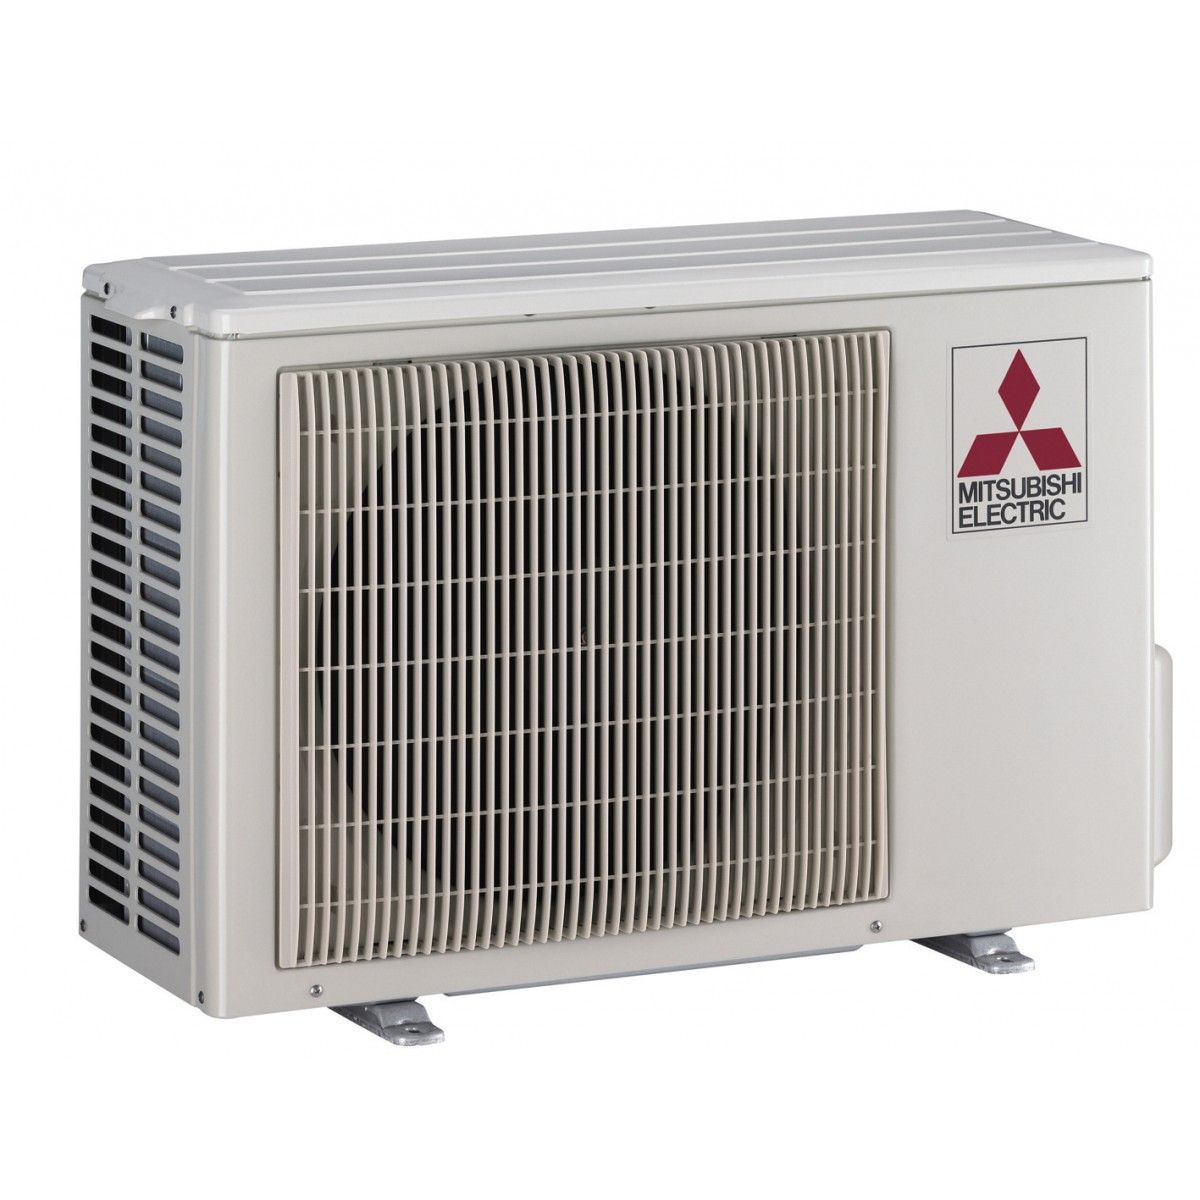 18k btu mitsubishi puza outdoor unit in ductless ac for Ductless ac